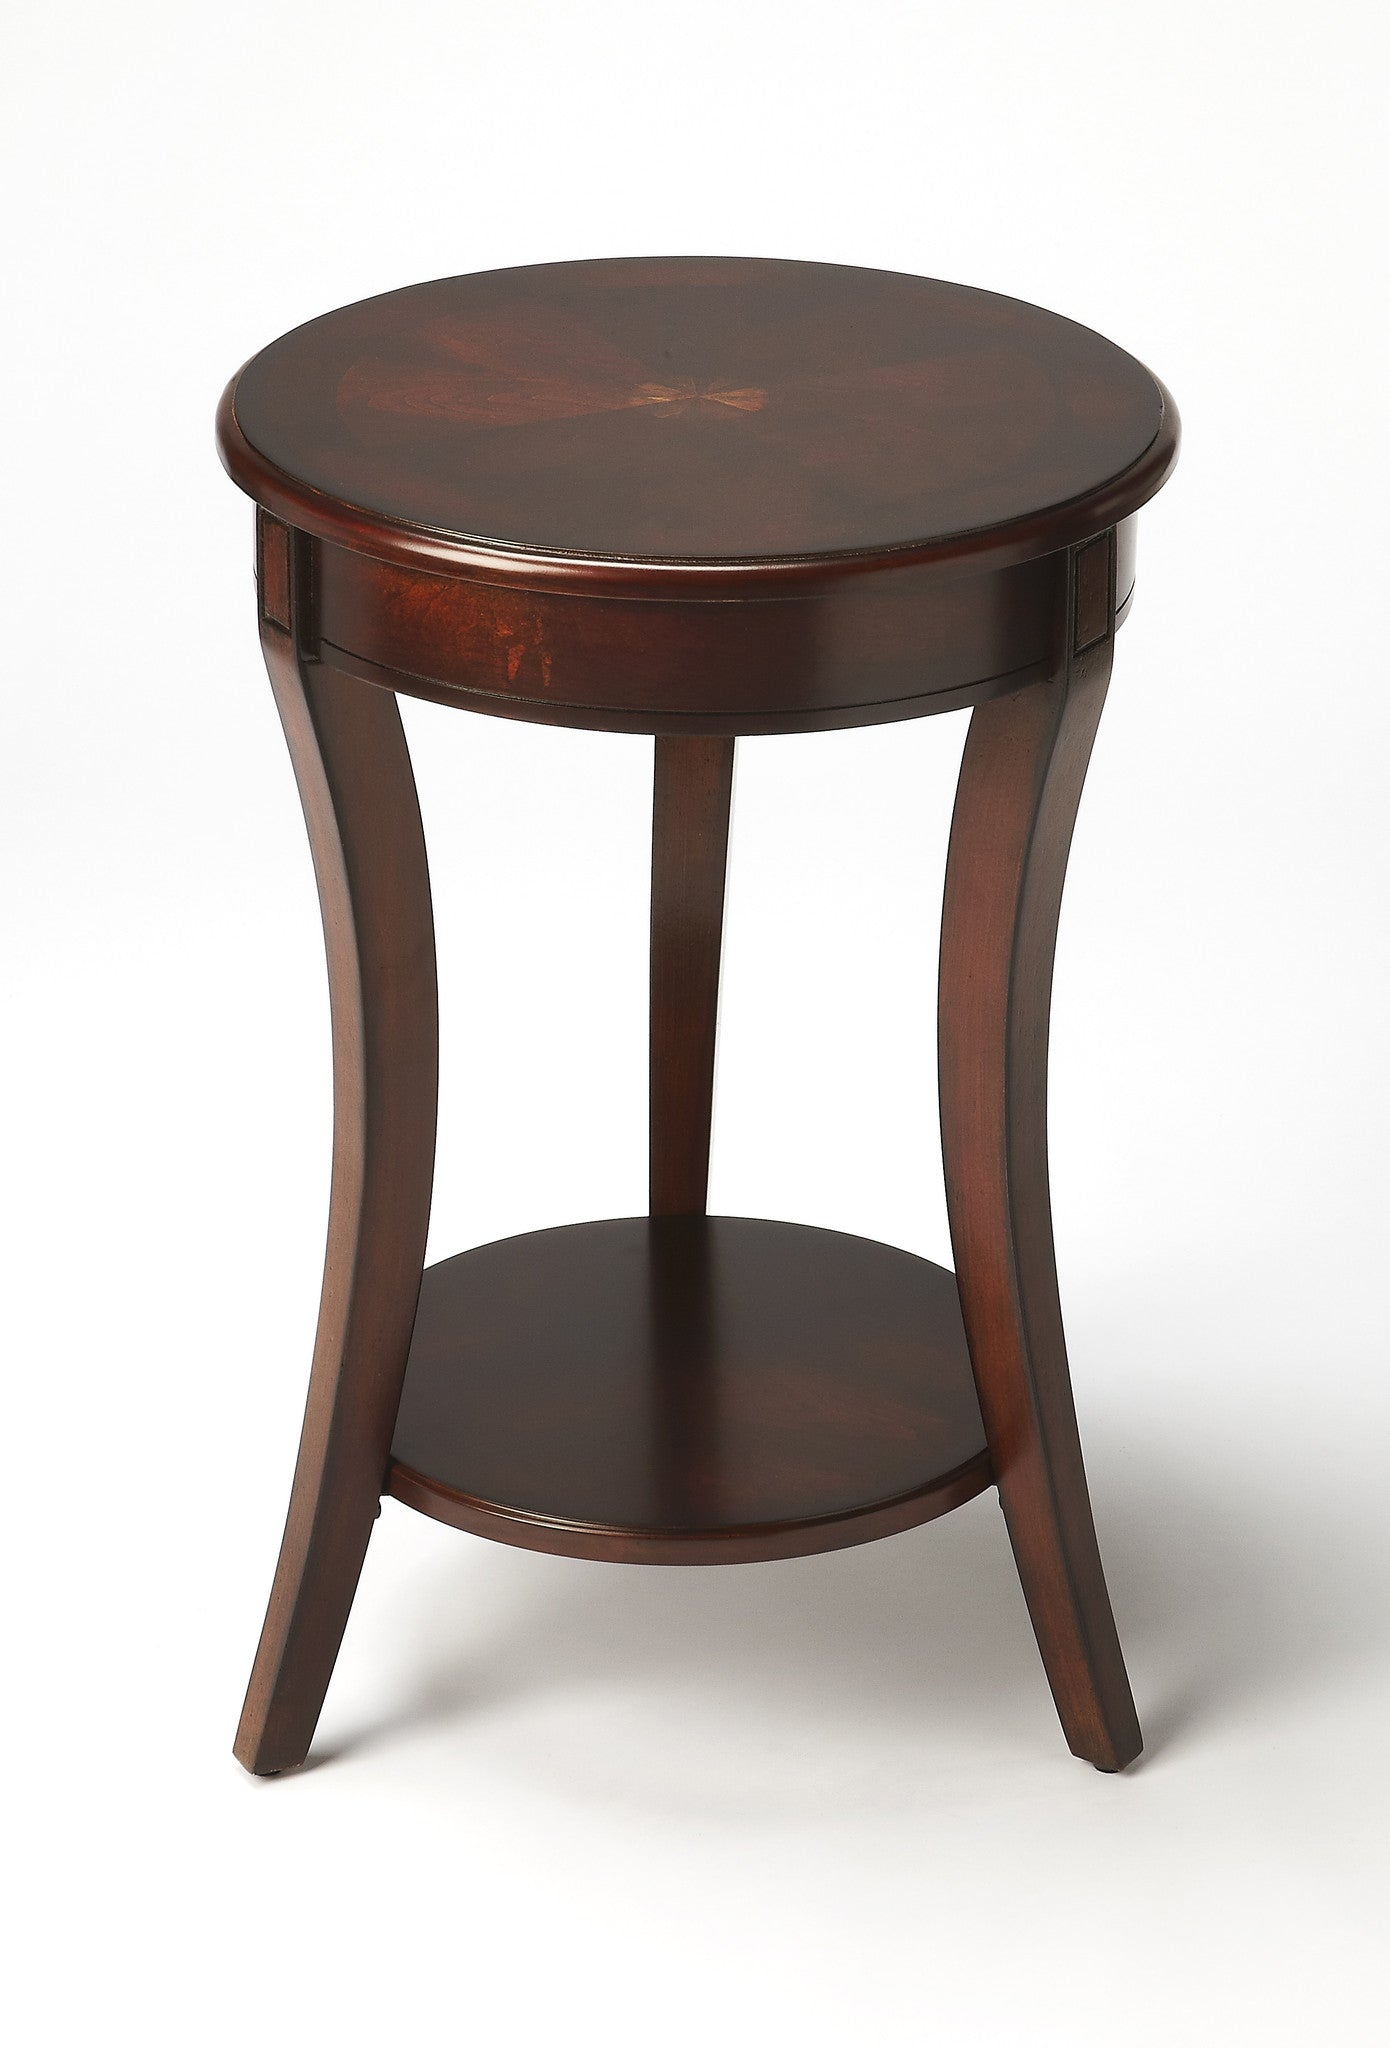 Holden Plantation Cherry Accent Table by Butler Specialty Company 0992024